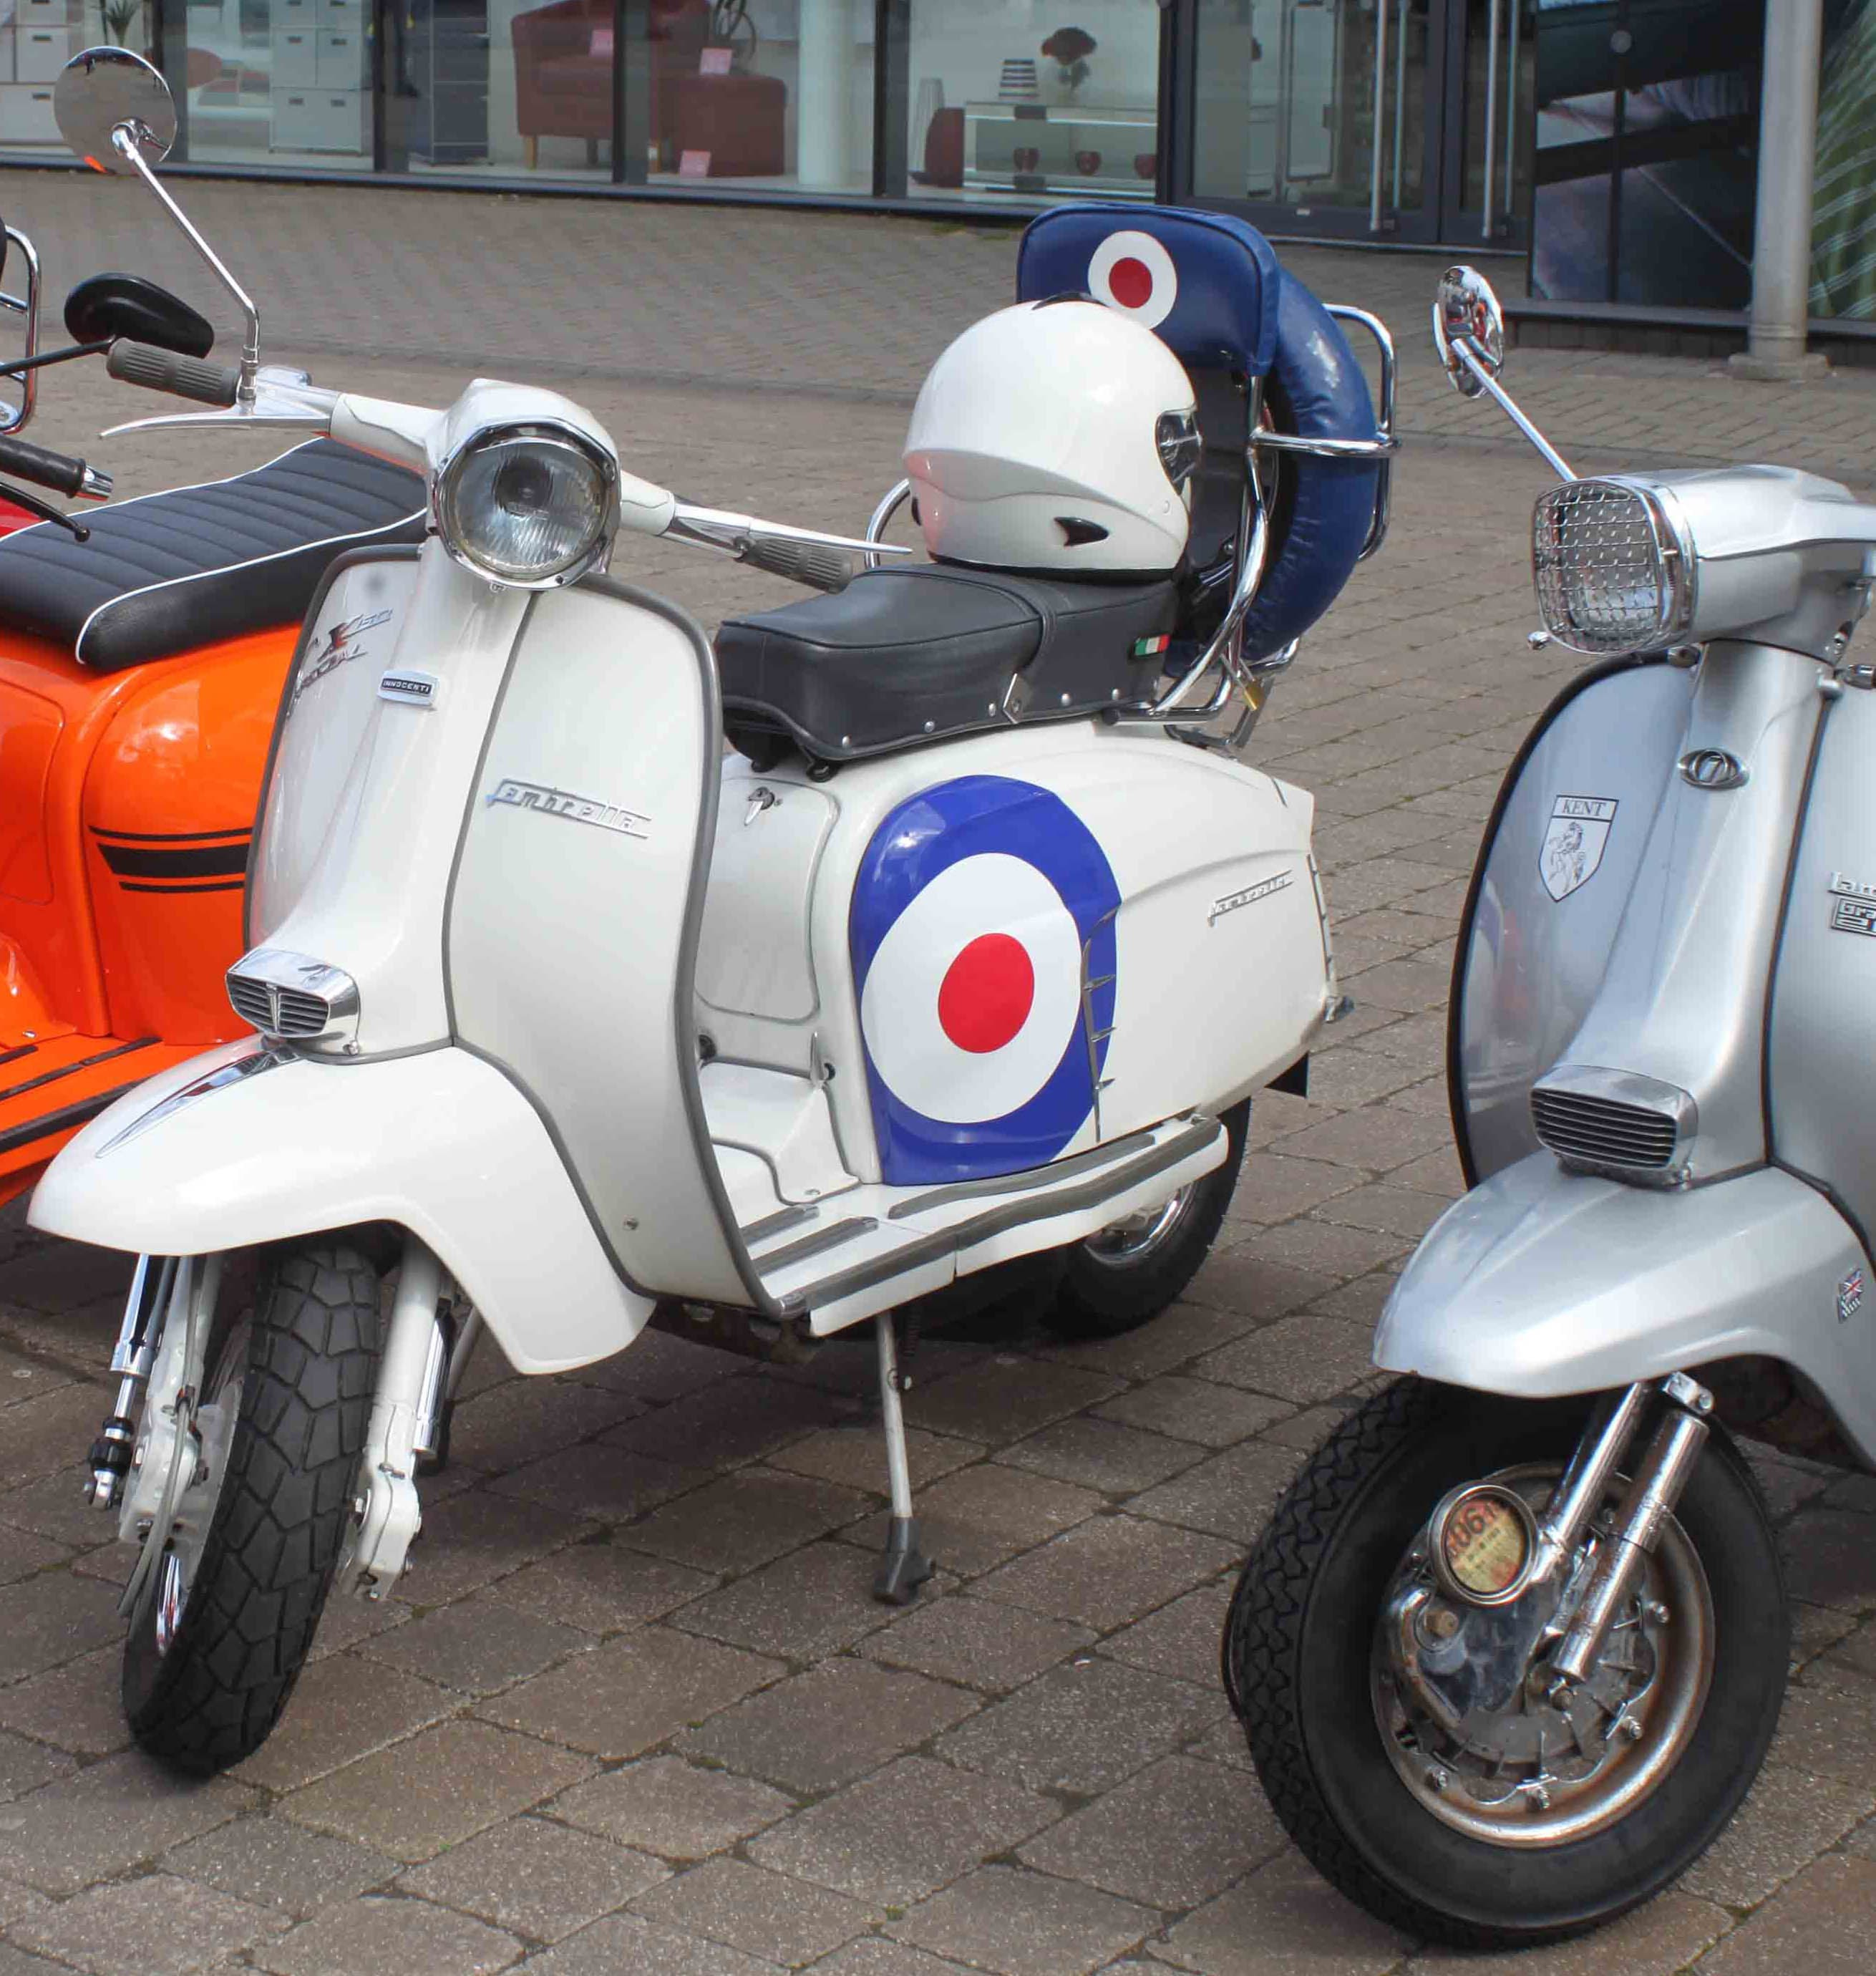 Double TWO Chatham hosts Lambretta Scooter Event